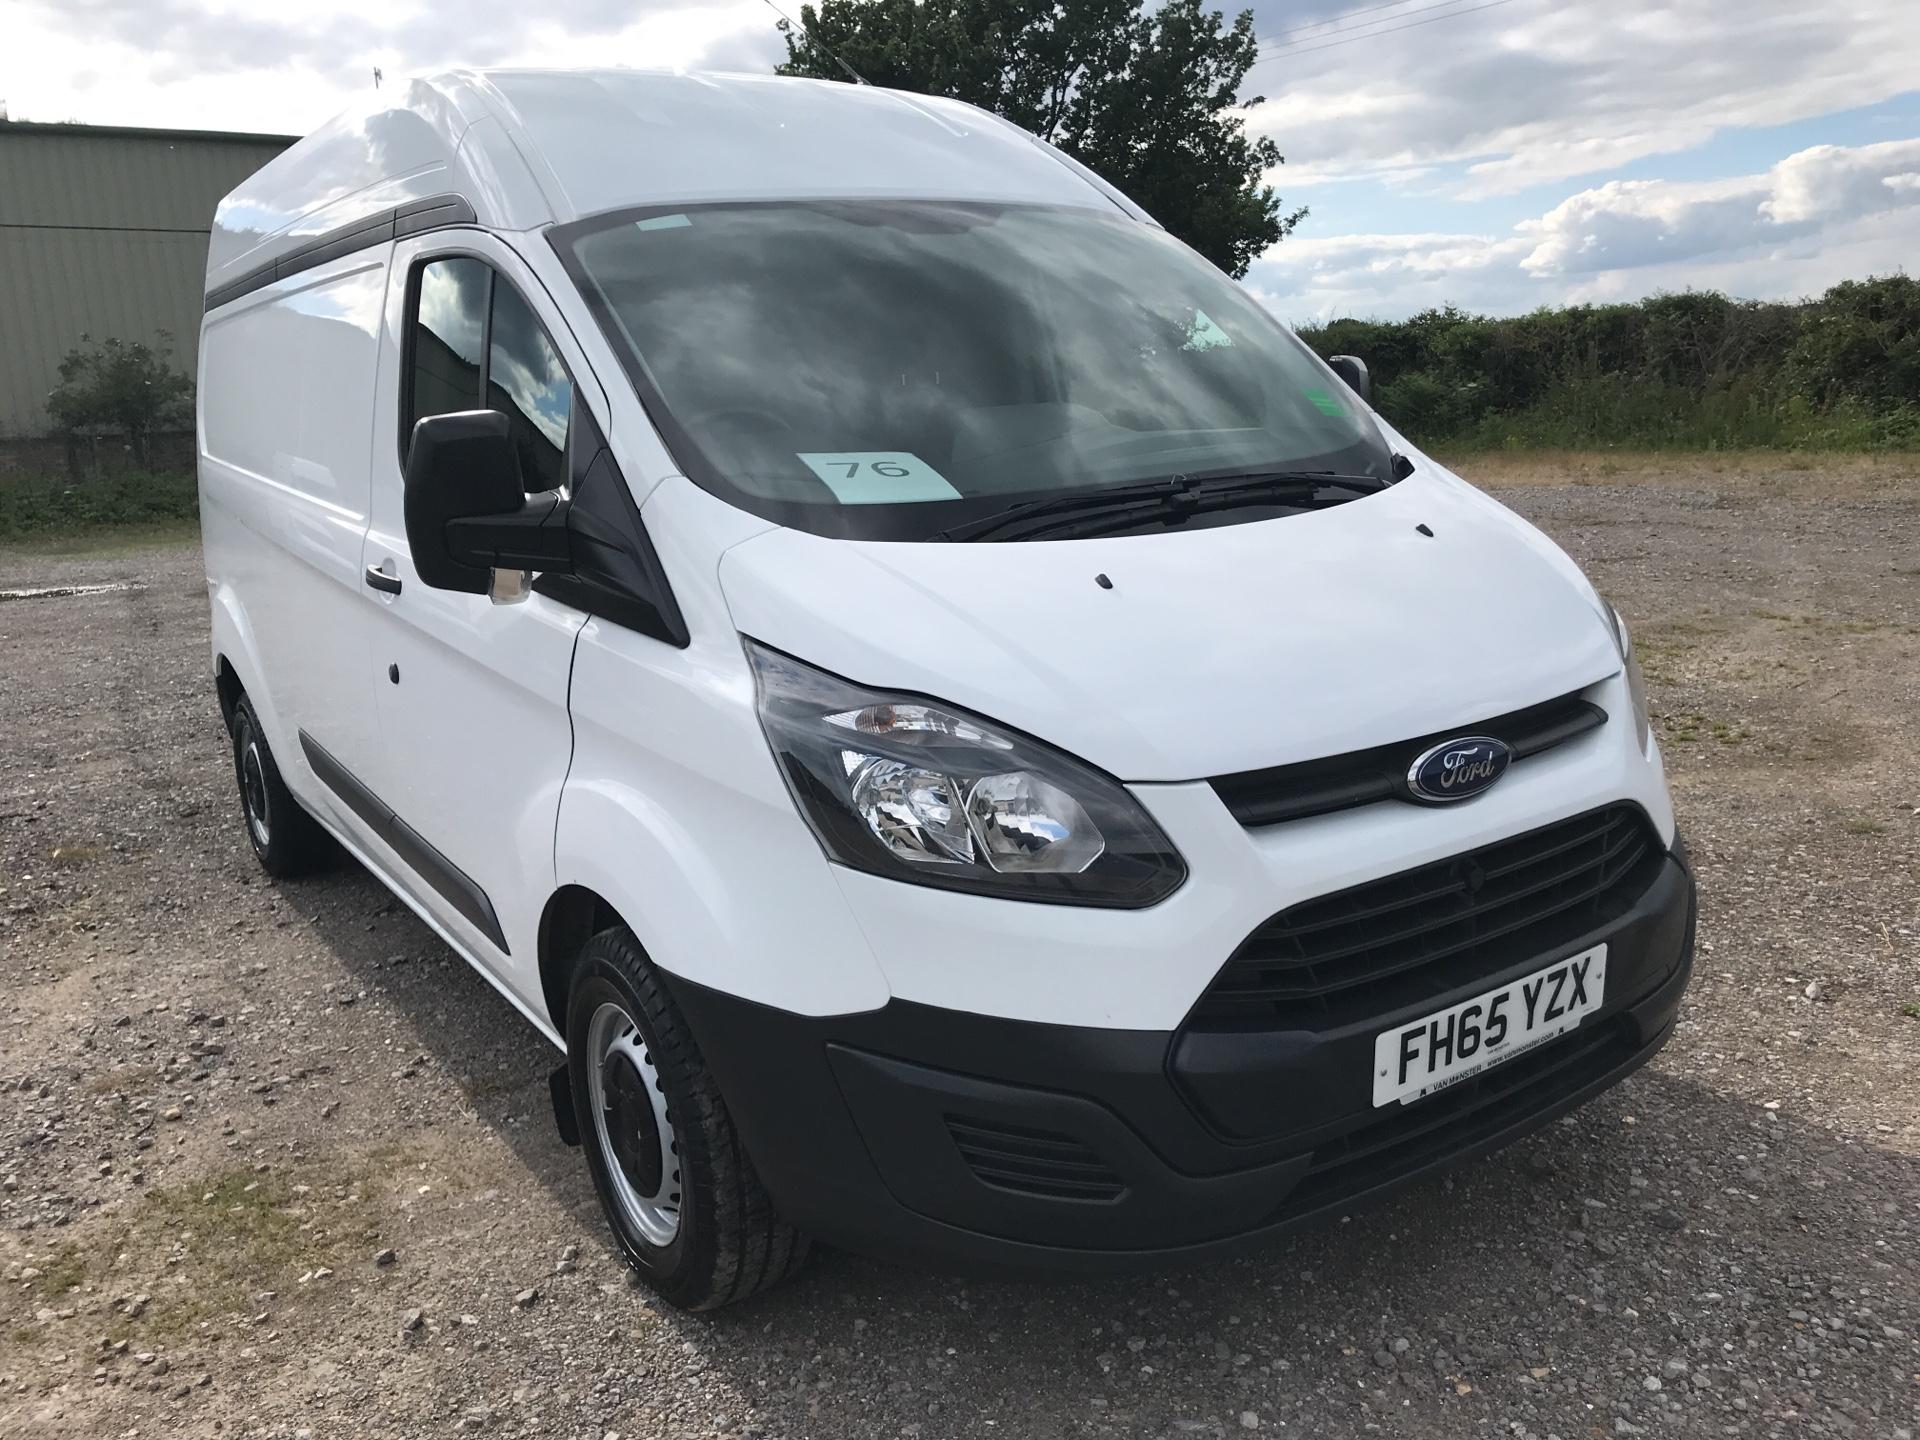 2015 Ford Transit Custom 290 L2 DIESEL FWD 2.2 TDCI 100PS HIGH ROOF VAN EURO 5 (FH65YZX)